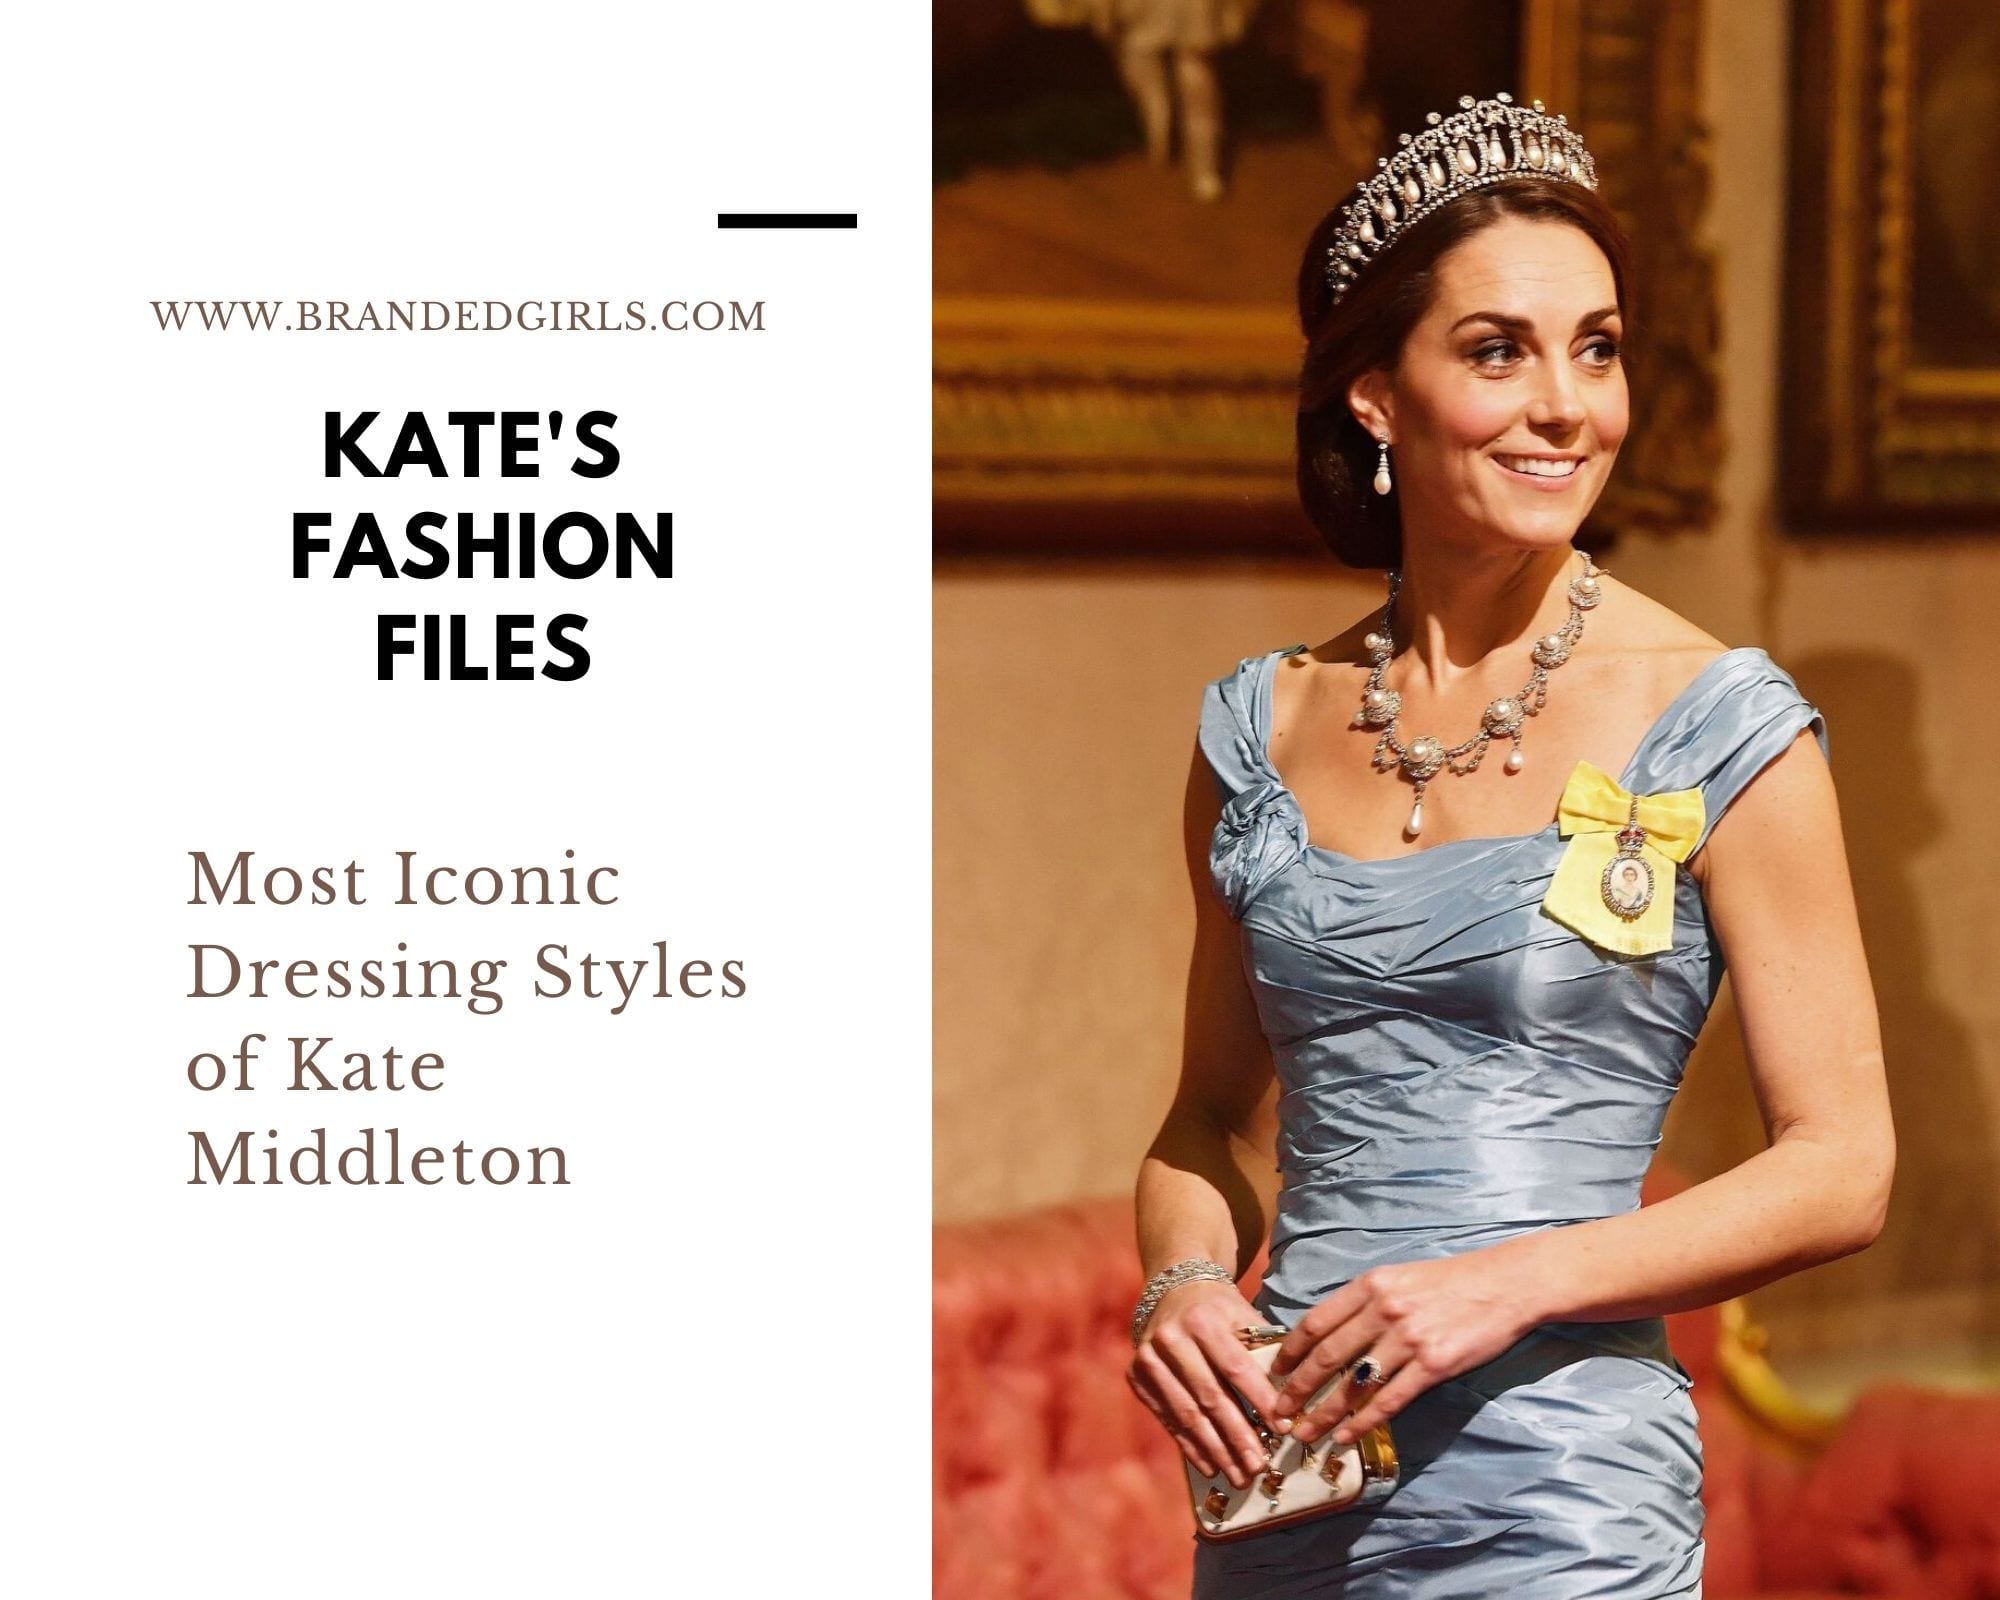 Kate-Fashion-Ideas Kate Middleton's Outfits-25 Best Dressing Styles Of Kate To Copy